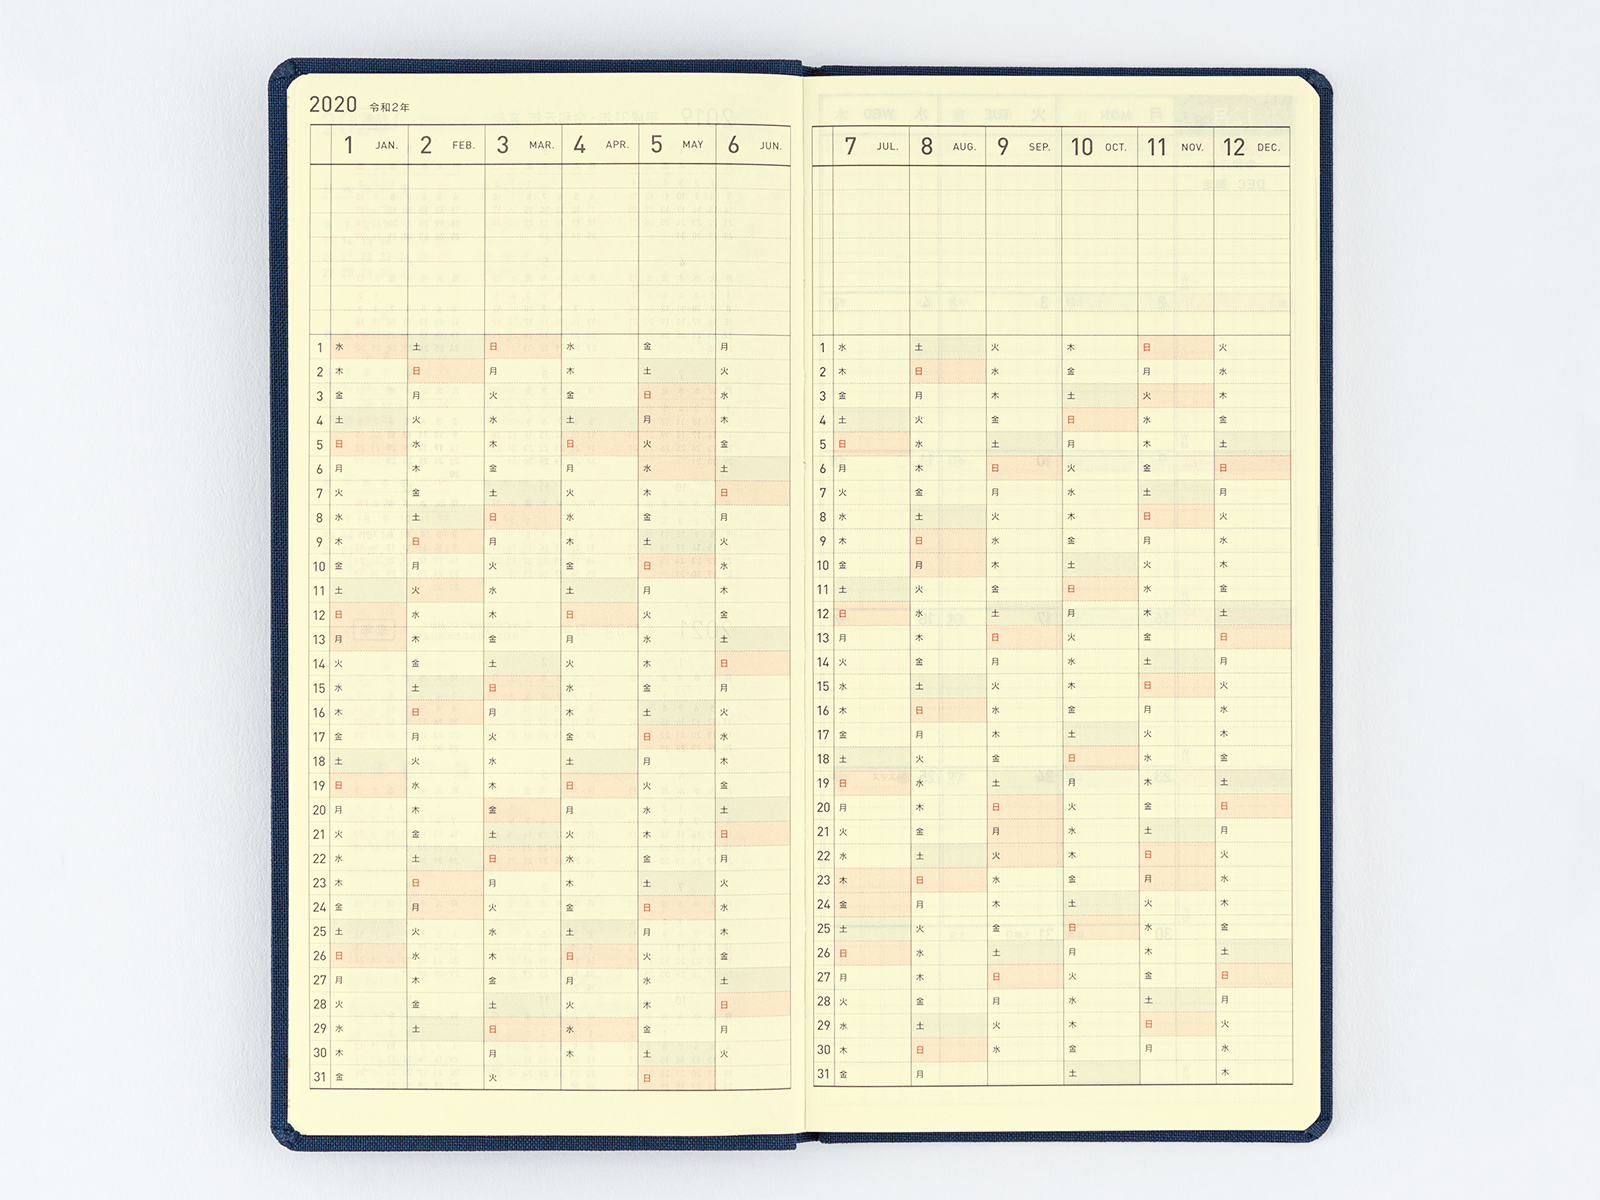 Weeks (3.7 x 7.3 in.) Yearly Index - From Hobonichi Website